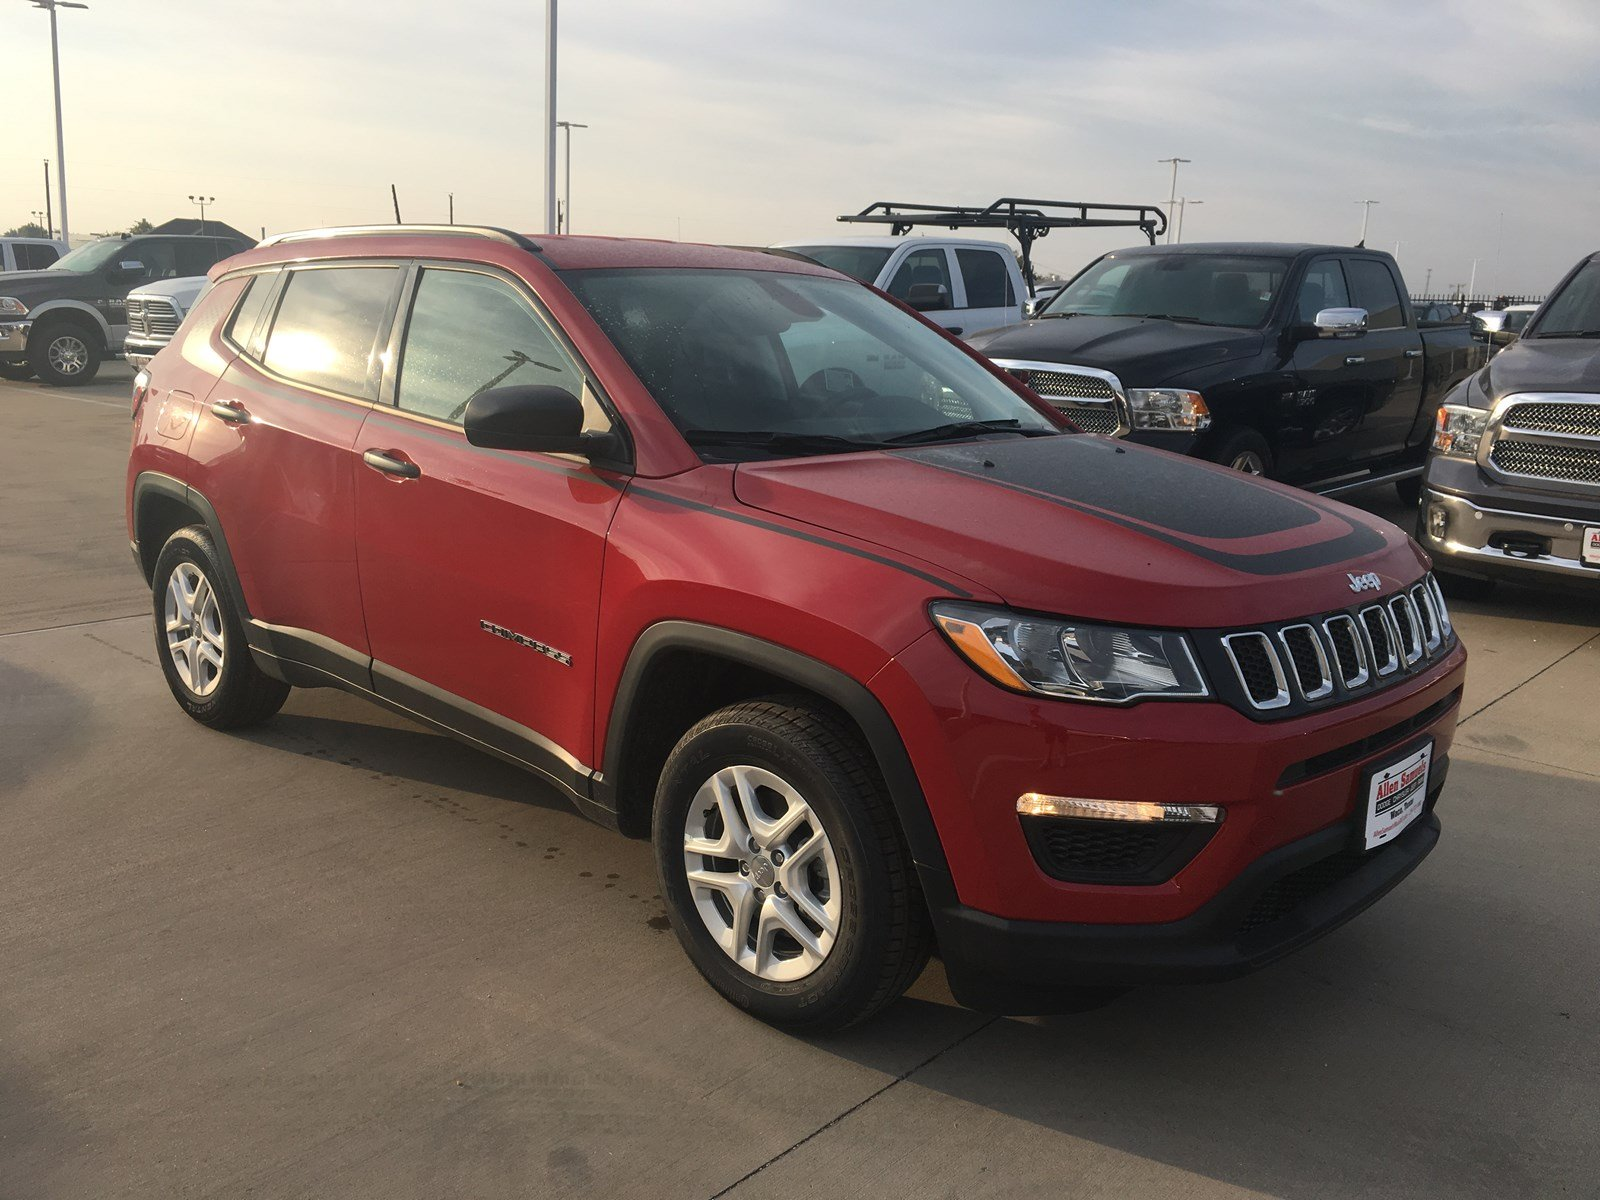 Allen Samuels Dodge >> New 2018 JEEP Compass Sport Utility in Waco #18J20028 | Allen Samuels Dodge Chrysler Jeep Ram FIAT